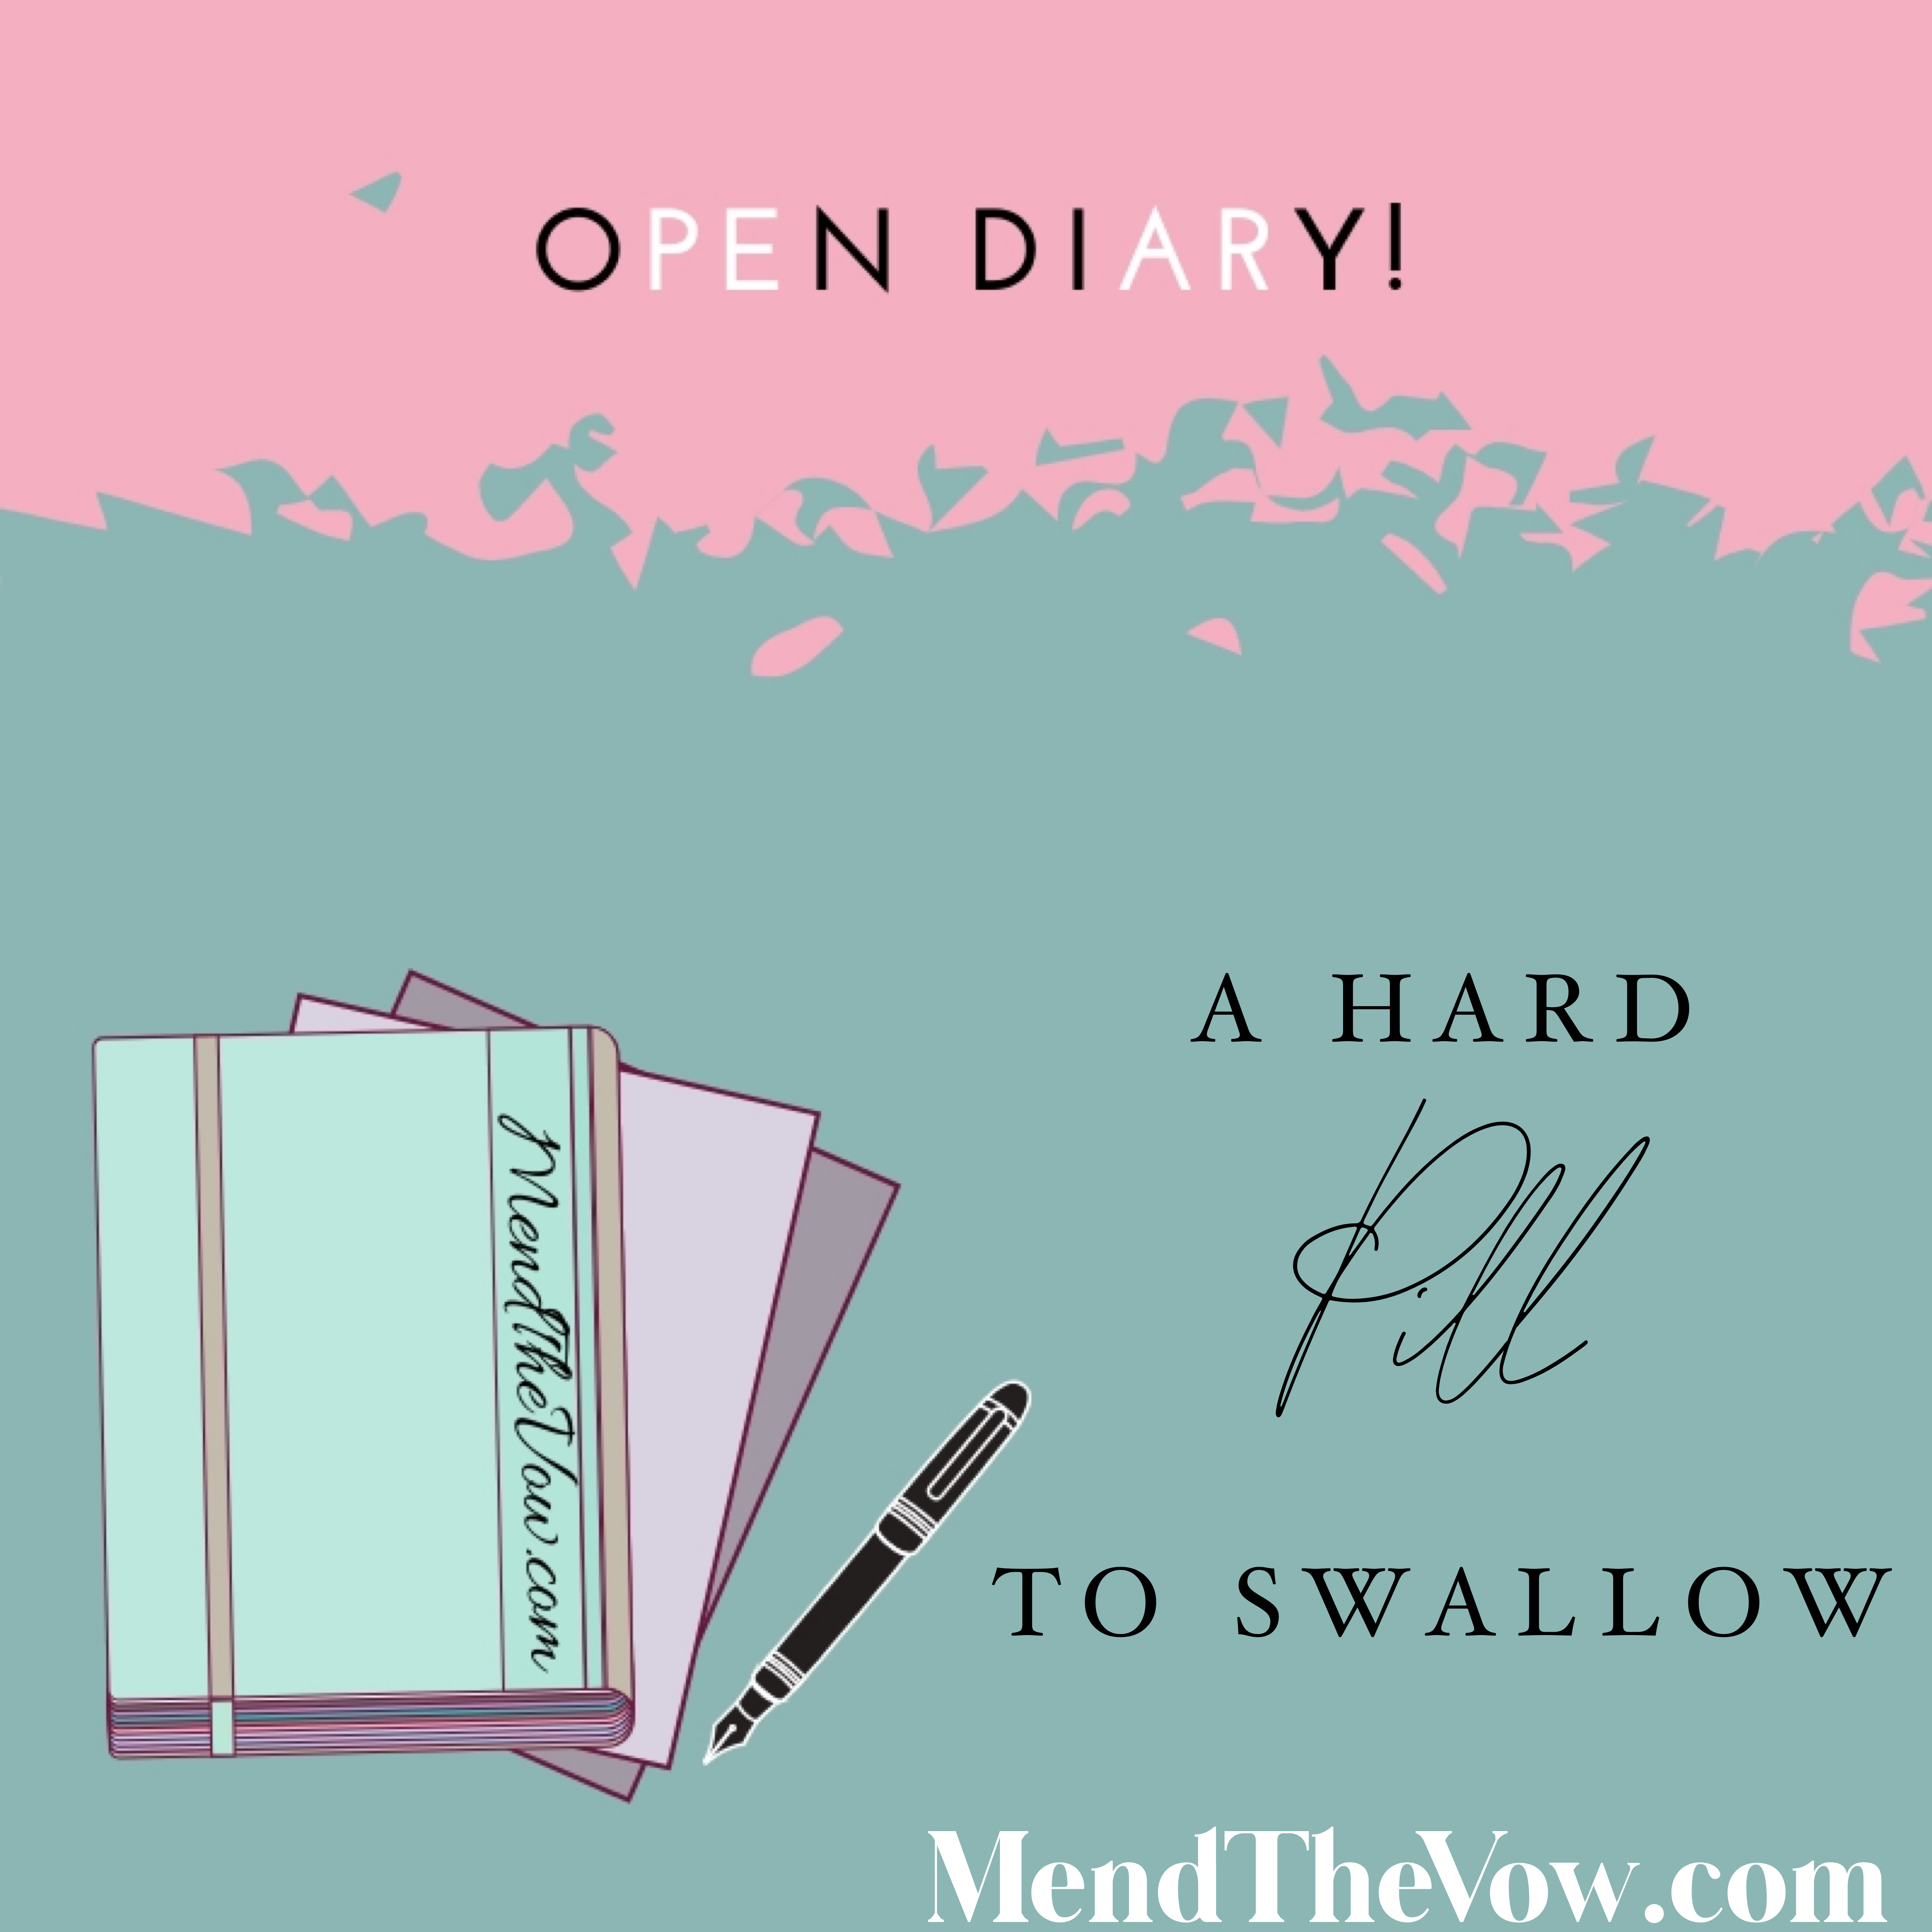 https://mendthevow.com/2020/07/a-hard-pill-to-swallow/in-the-custom-structure-text-box/